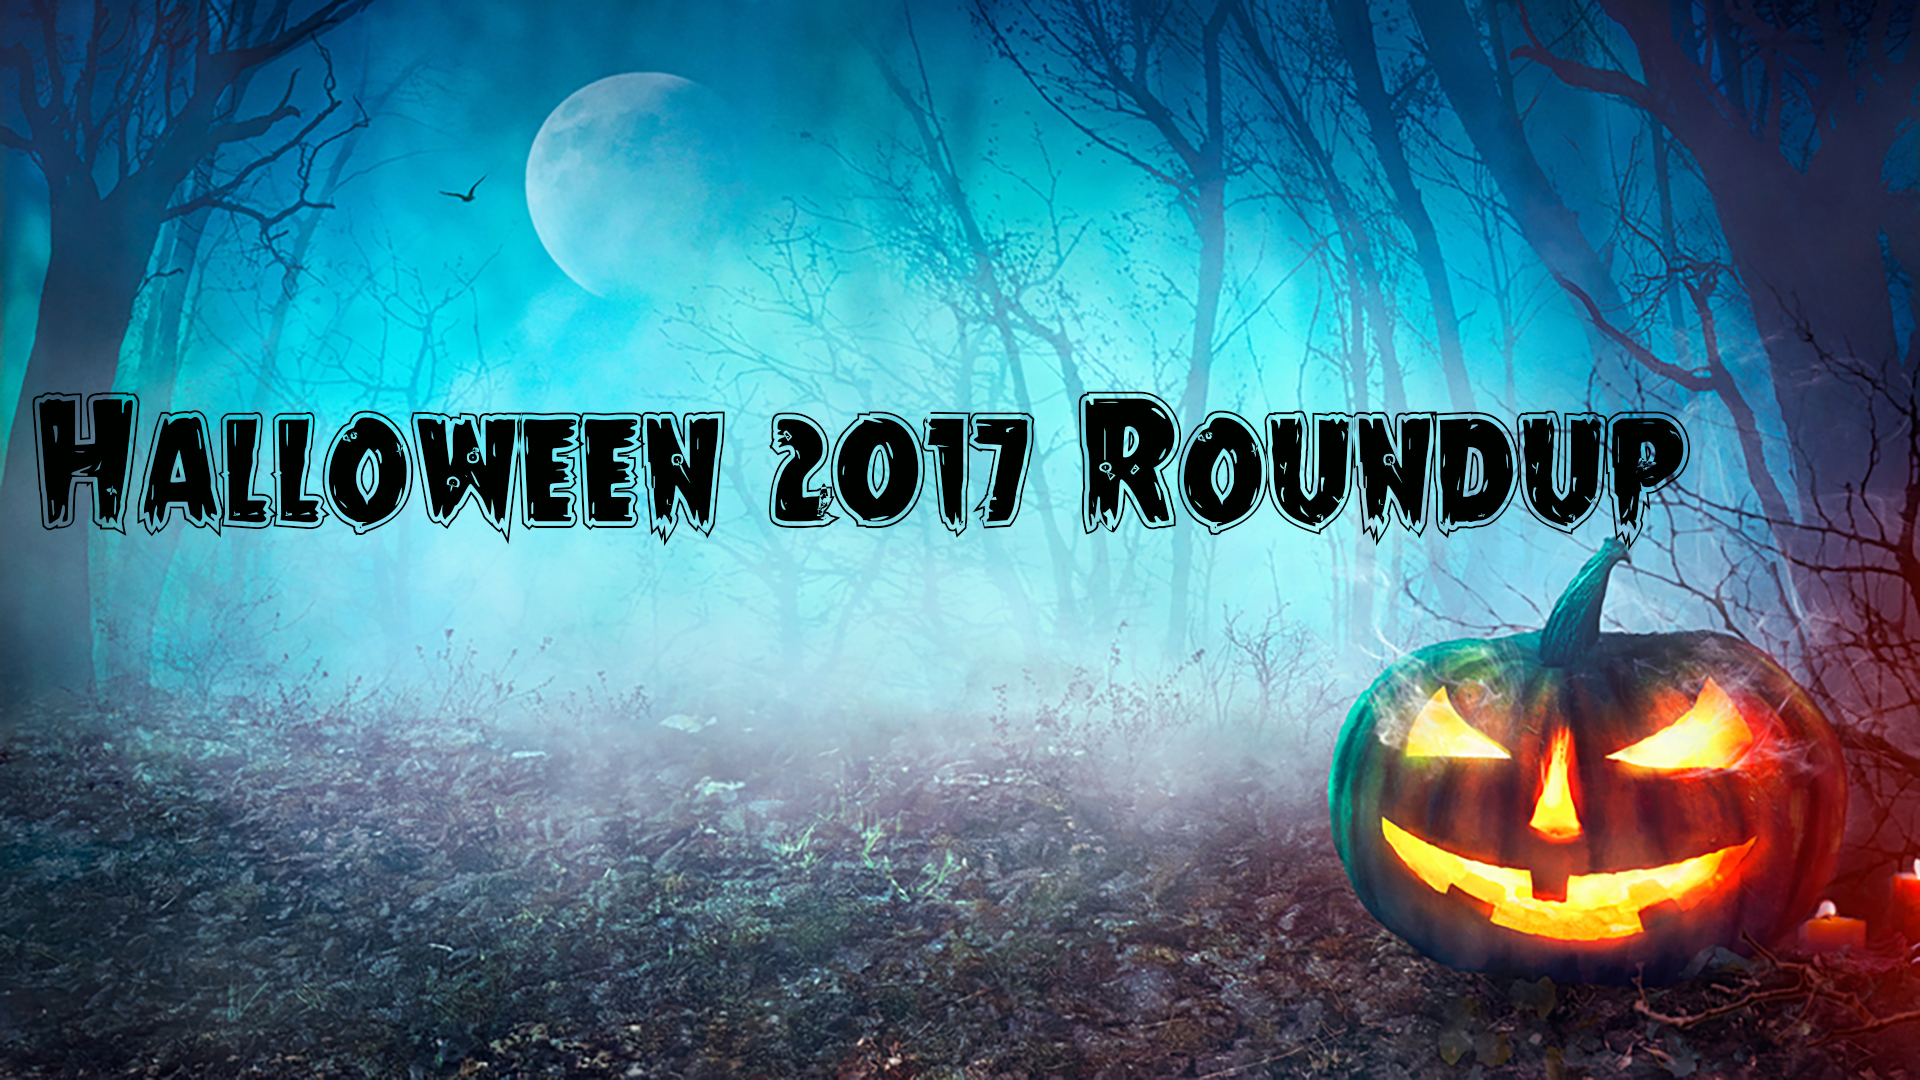 Halloween Roundup 2017: Your guide to Amarillo-area holiday fun for kids and adults